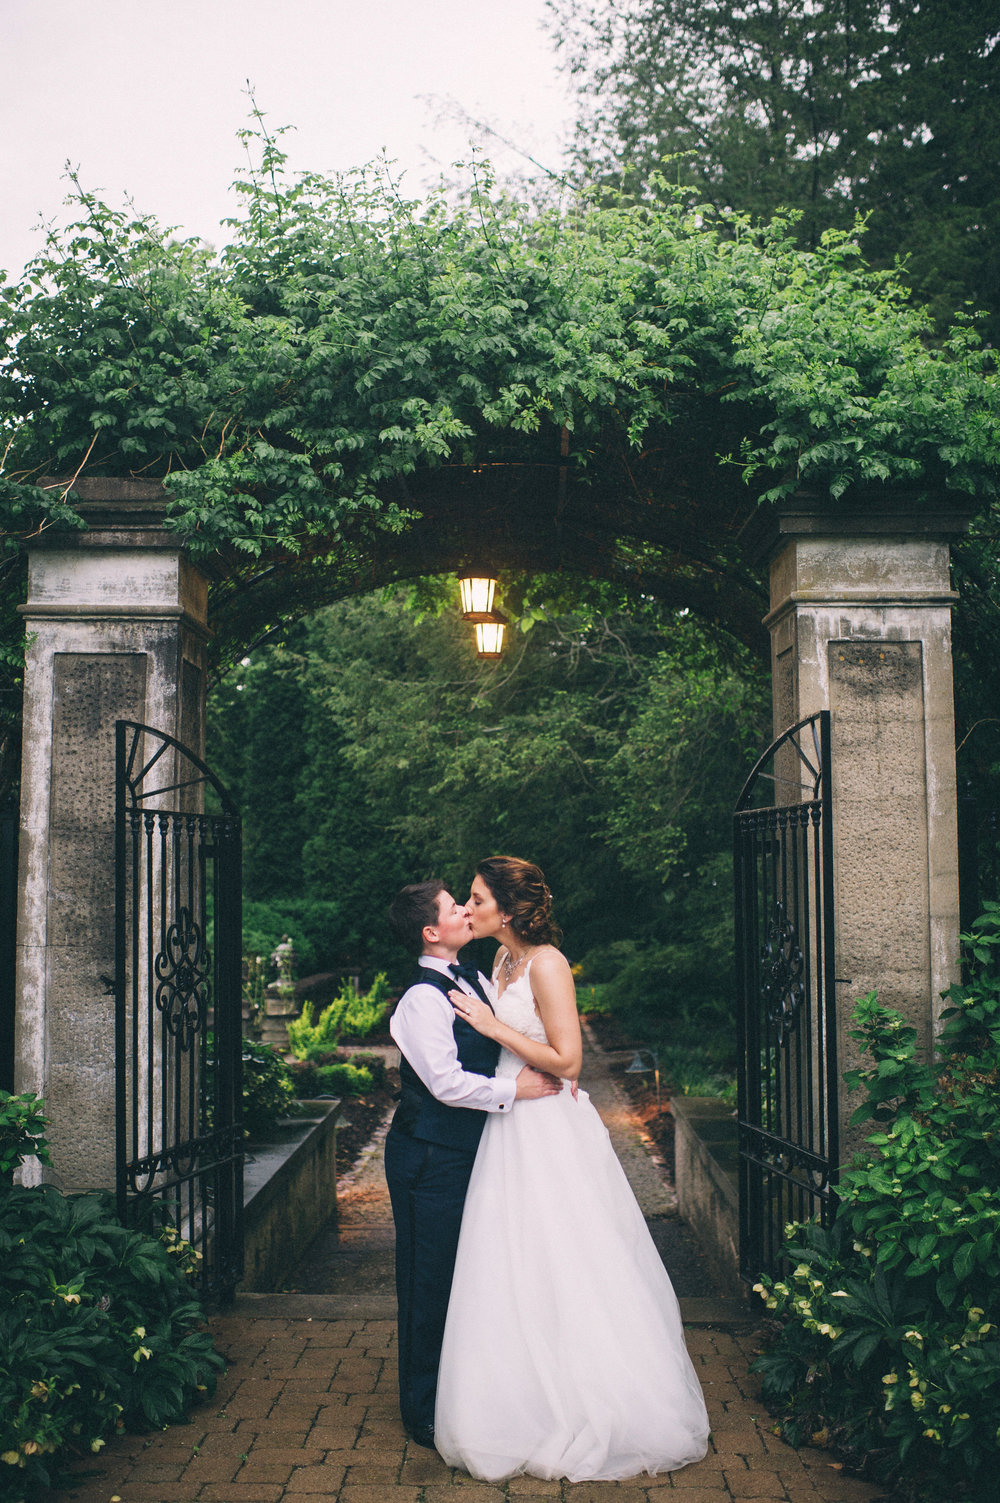 Elle & Suzy // Spring Wedding at the Lincliffe Estate // LGBTQ Kentucky Wedding Photographer // Louisville Engagement Photography // Couples Portraits